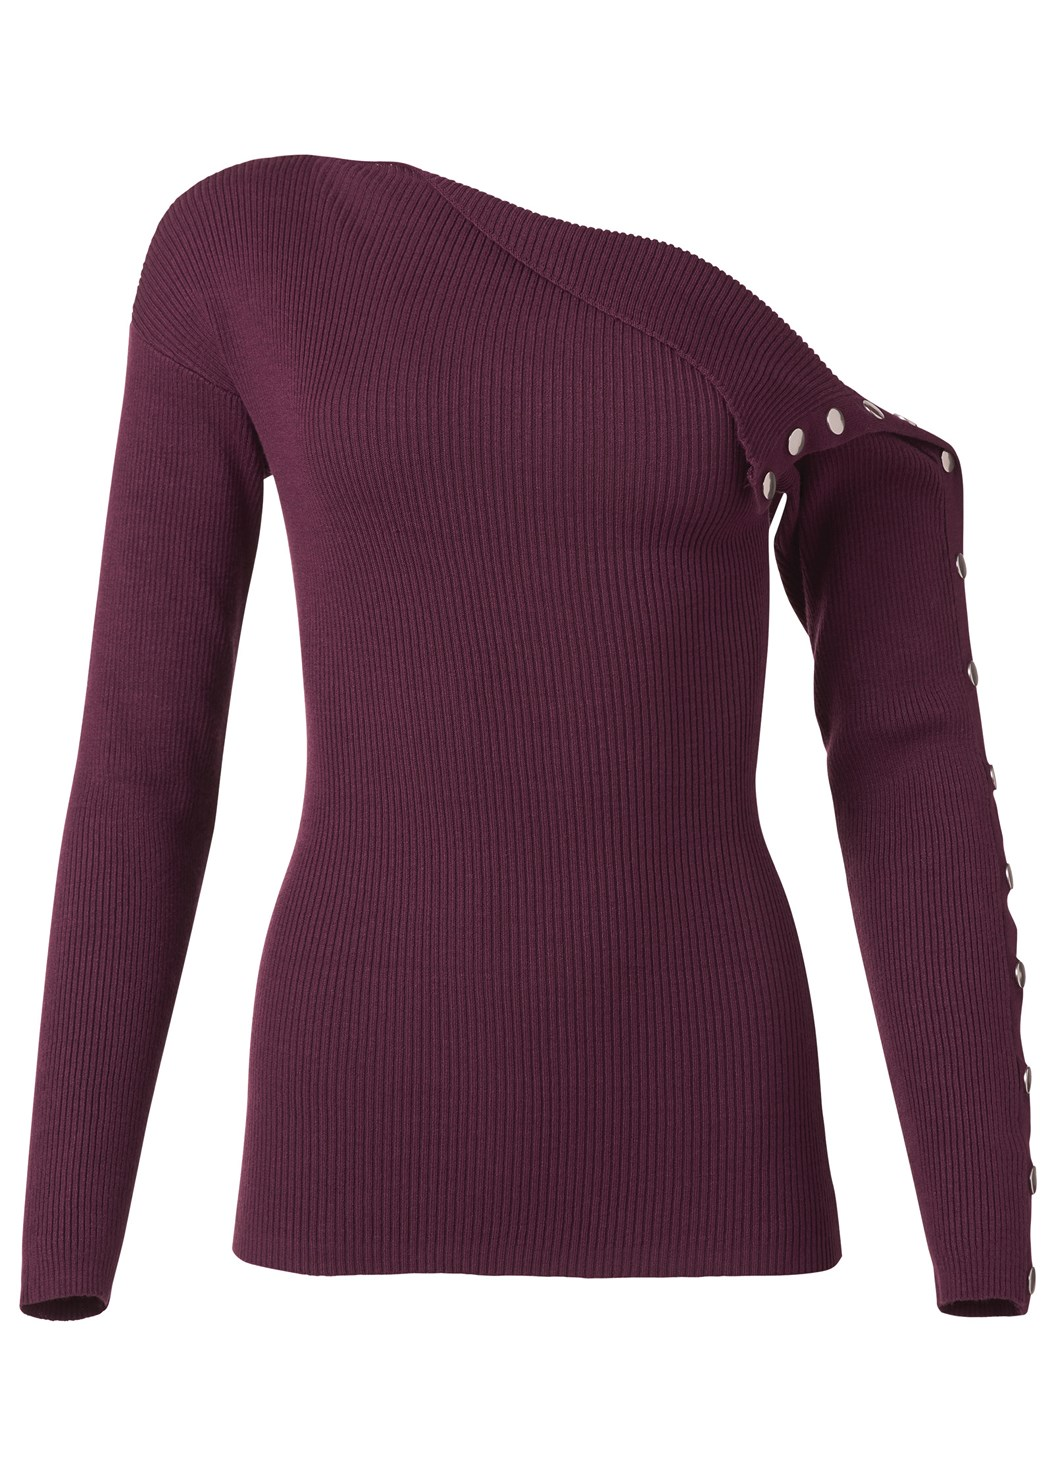 Snap Detail Sweater,Mid Rise Color Skinny Jeans